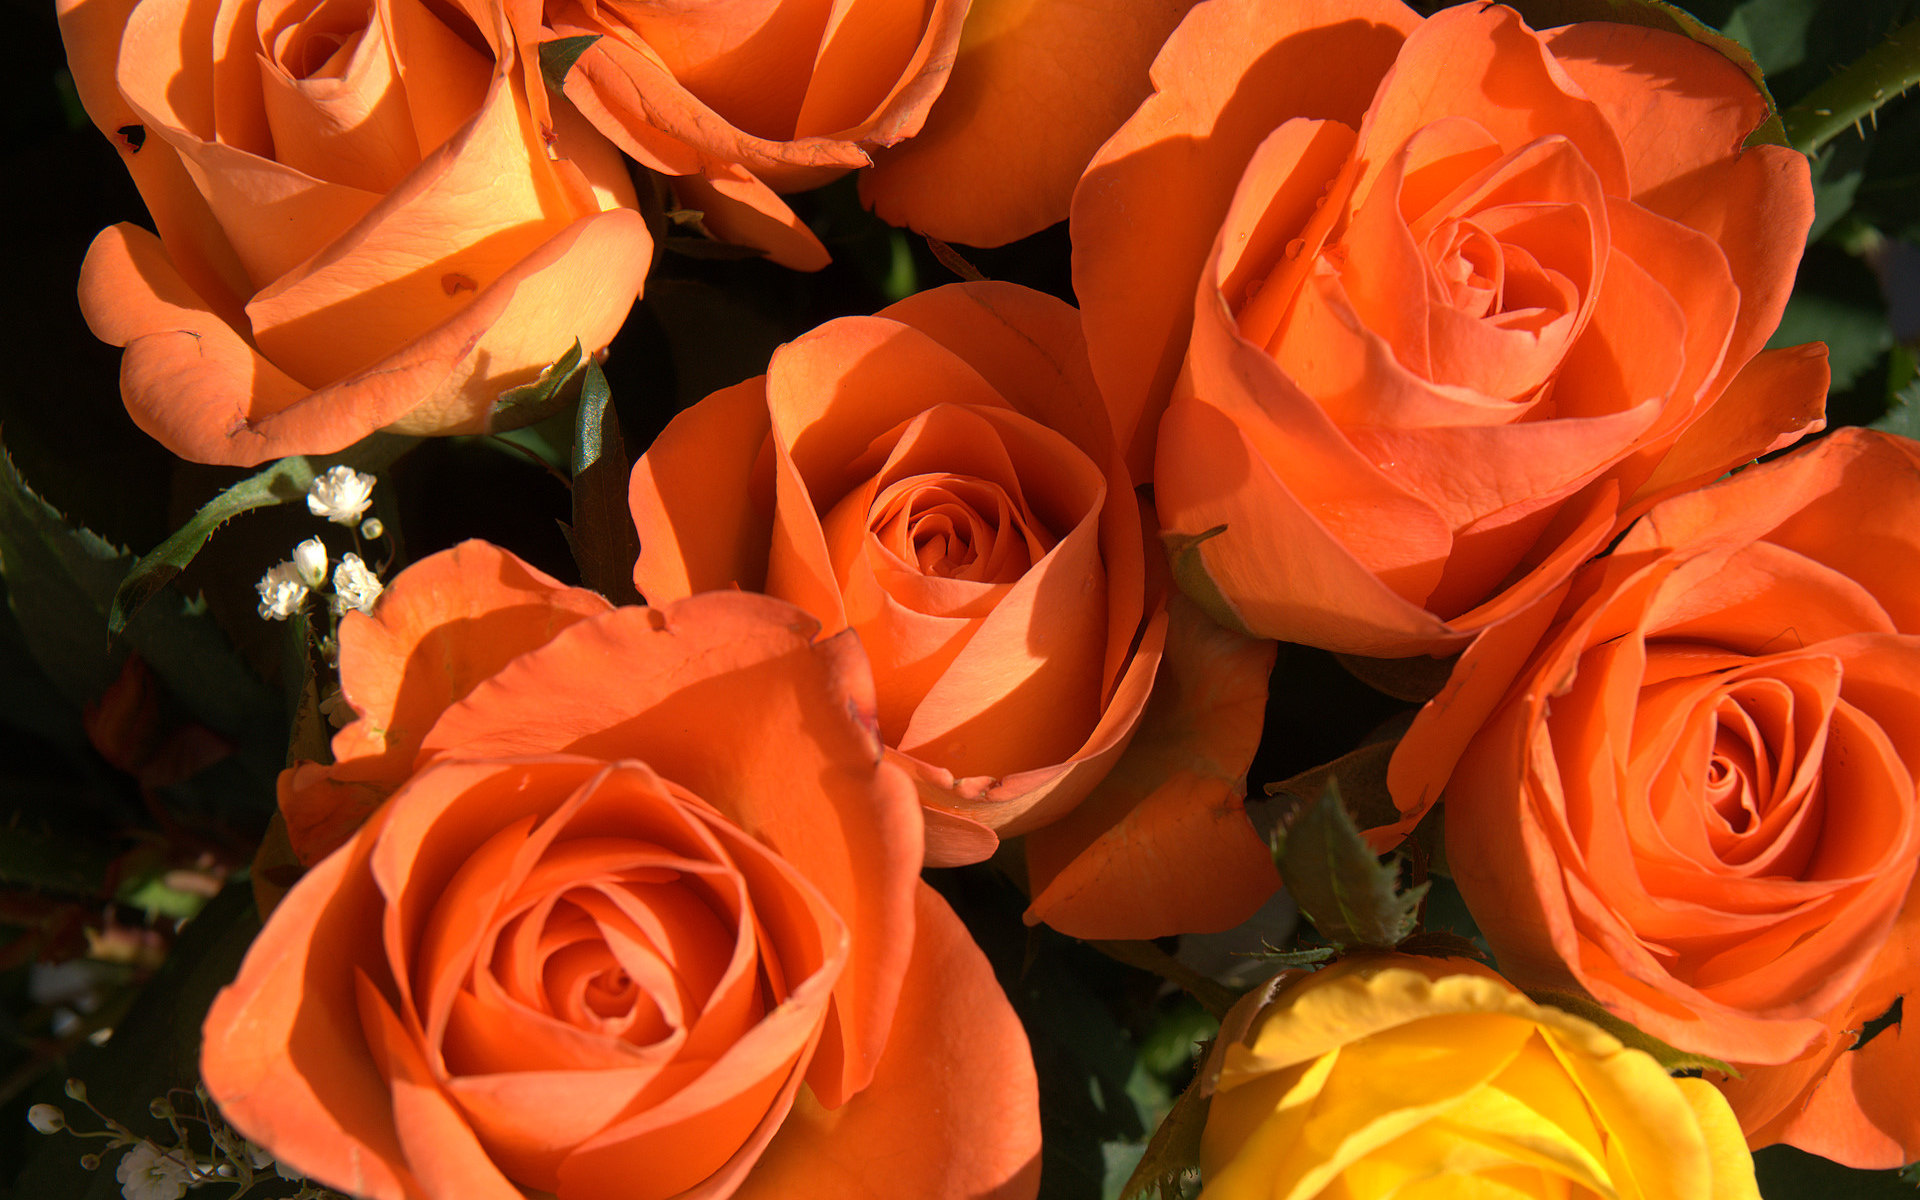 Roses Awesome Orange RosesOrange Roses Wallpaper